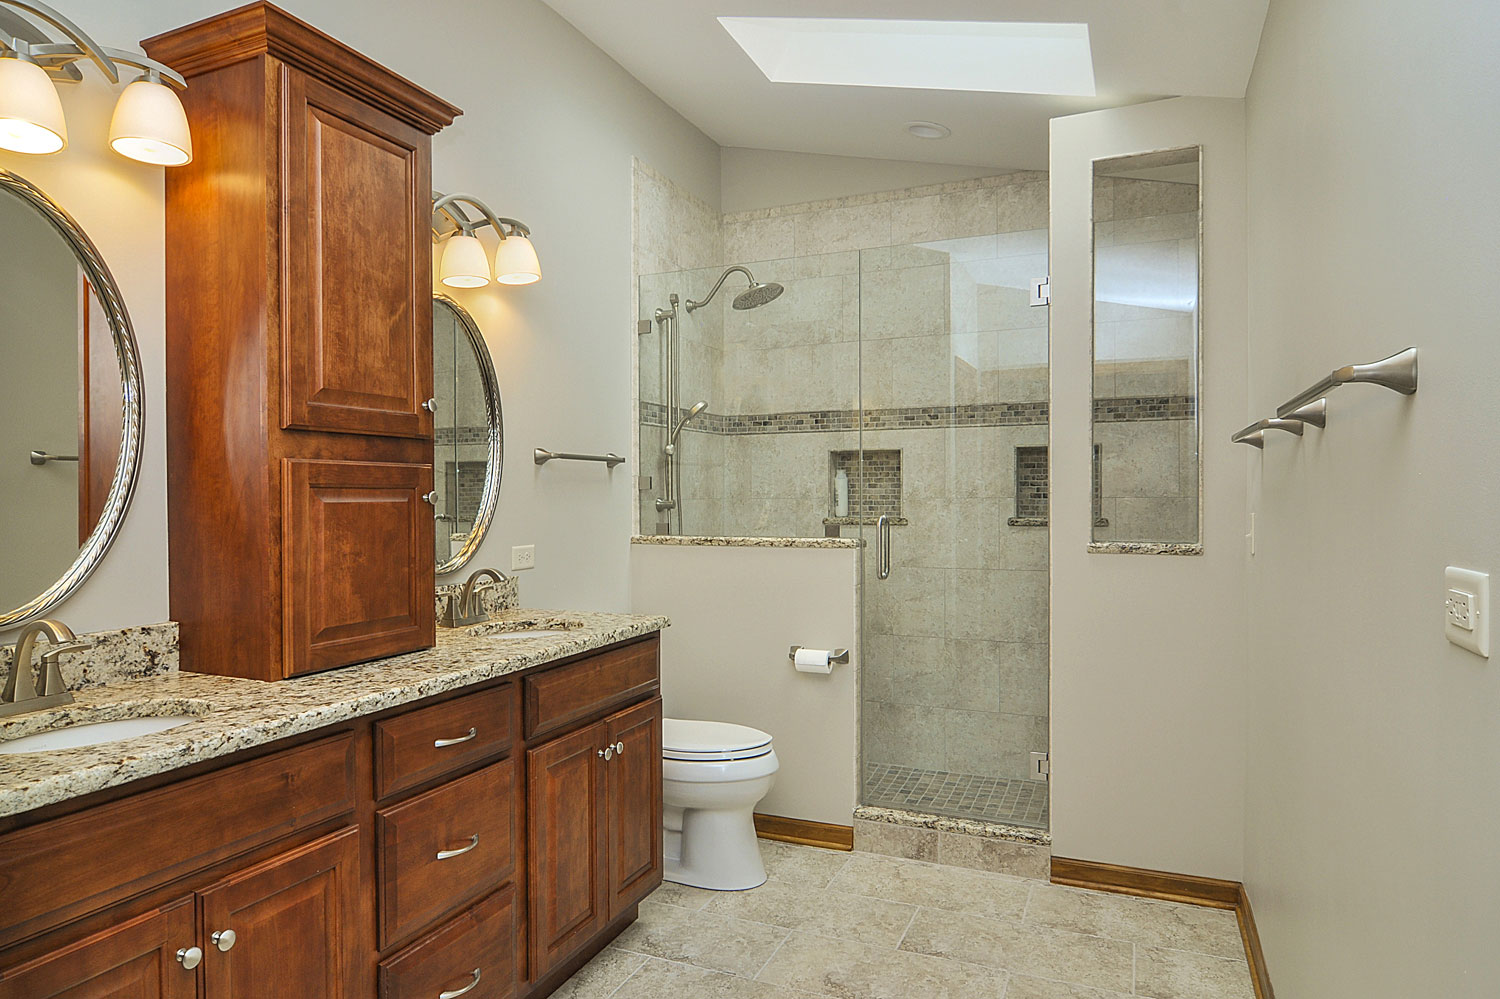 Rick & Marlene's Master Bathroom Remodel Pictures | Home ...